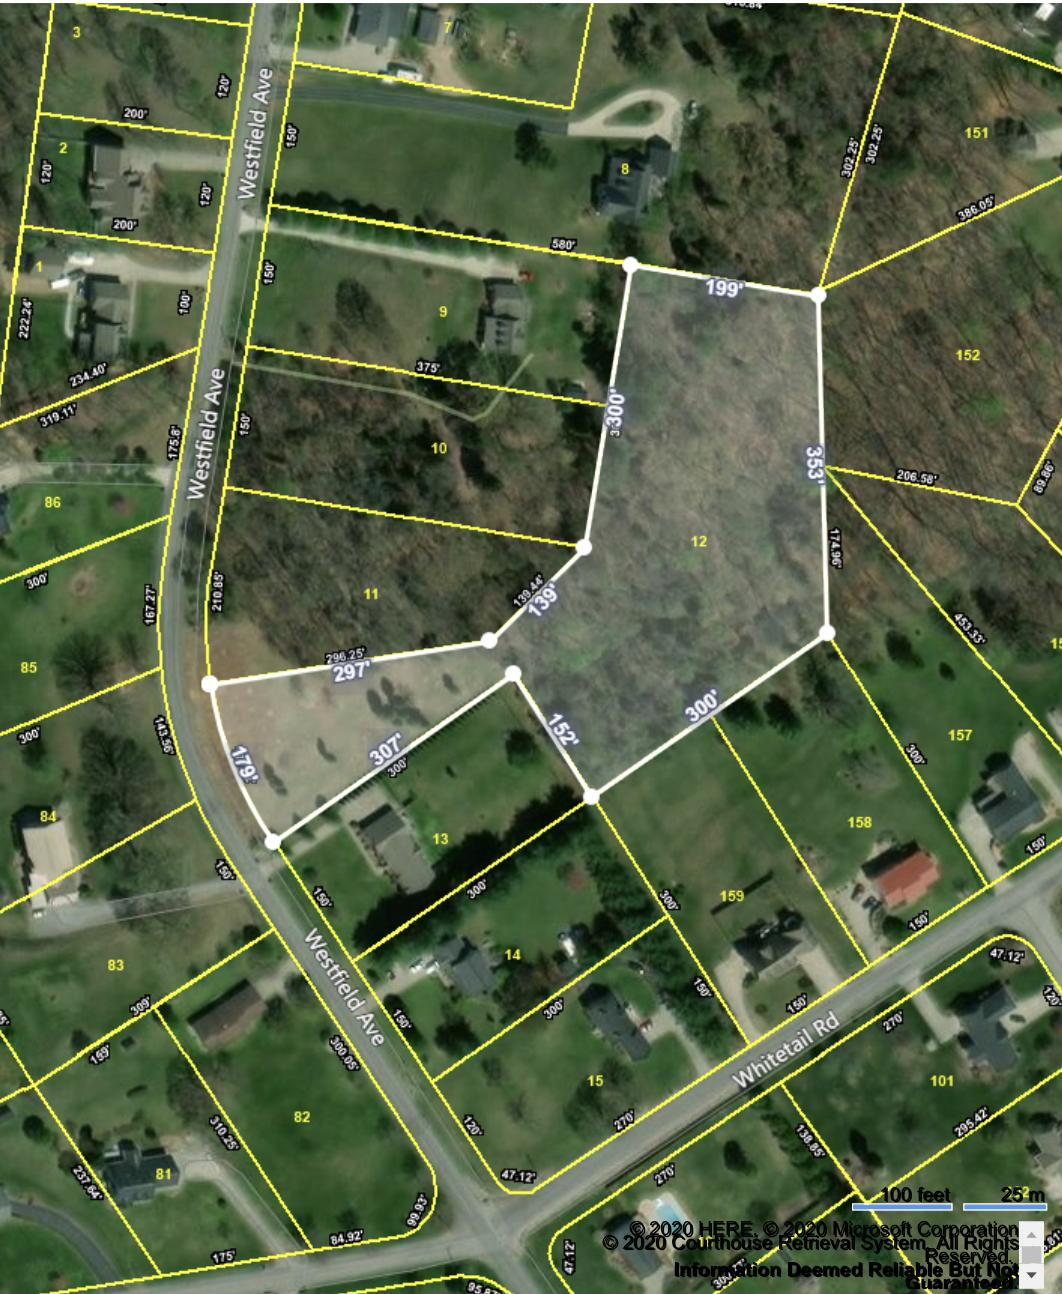 Tbd Westfield Avenue, Church Hill, Tennessee 37642, ,Lots And Land,For Sale,Tbd Westfield Avenue,9916639